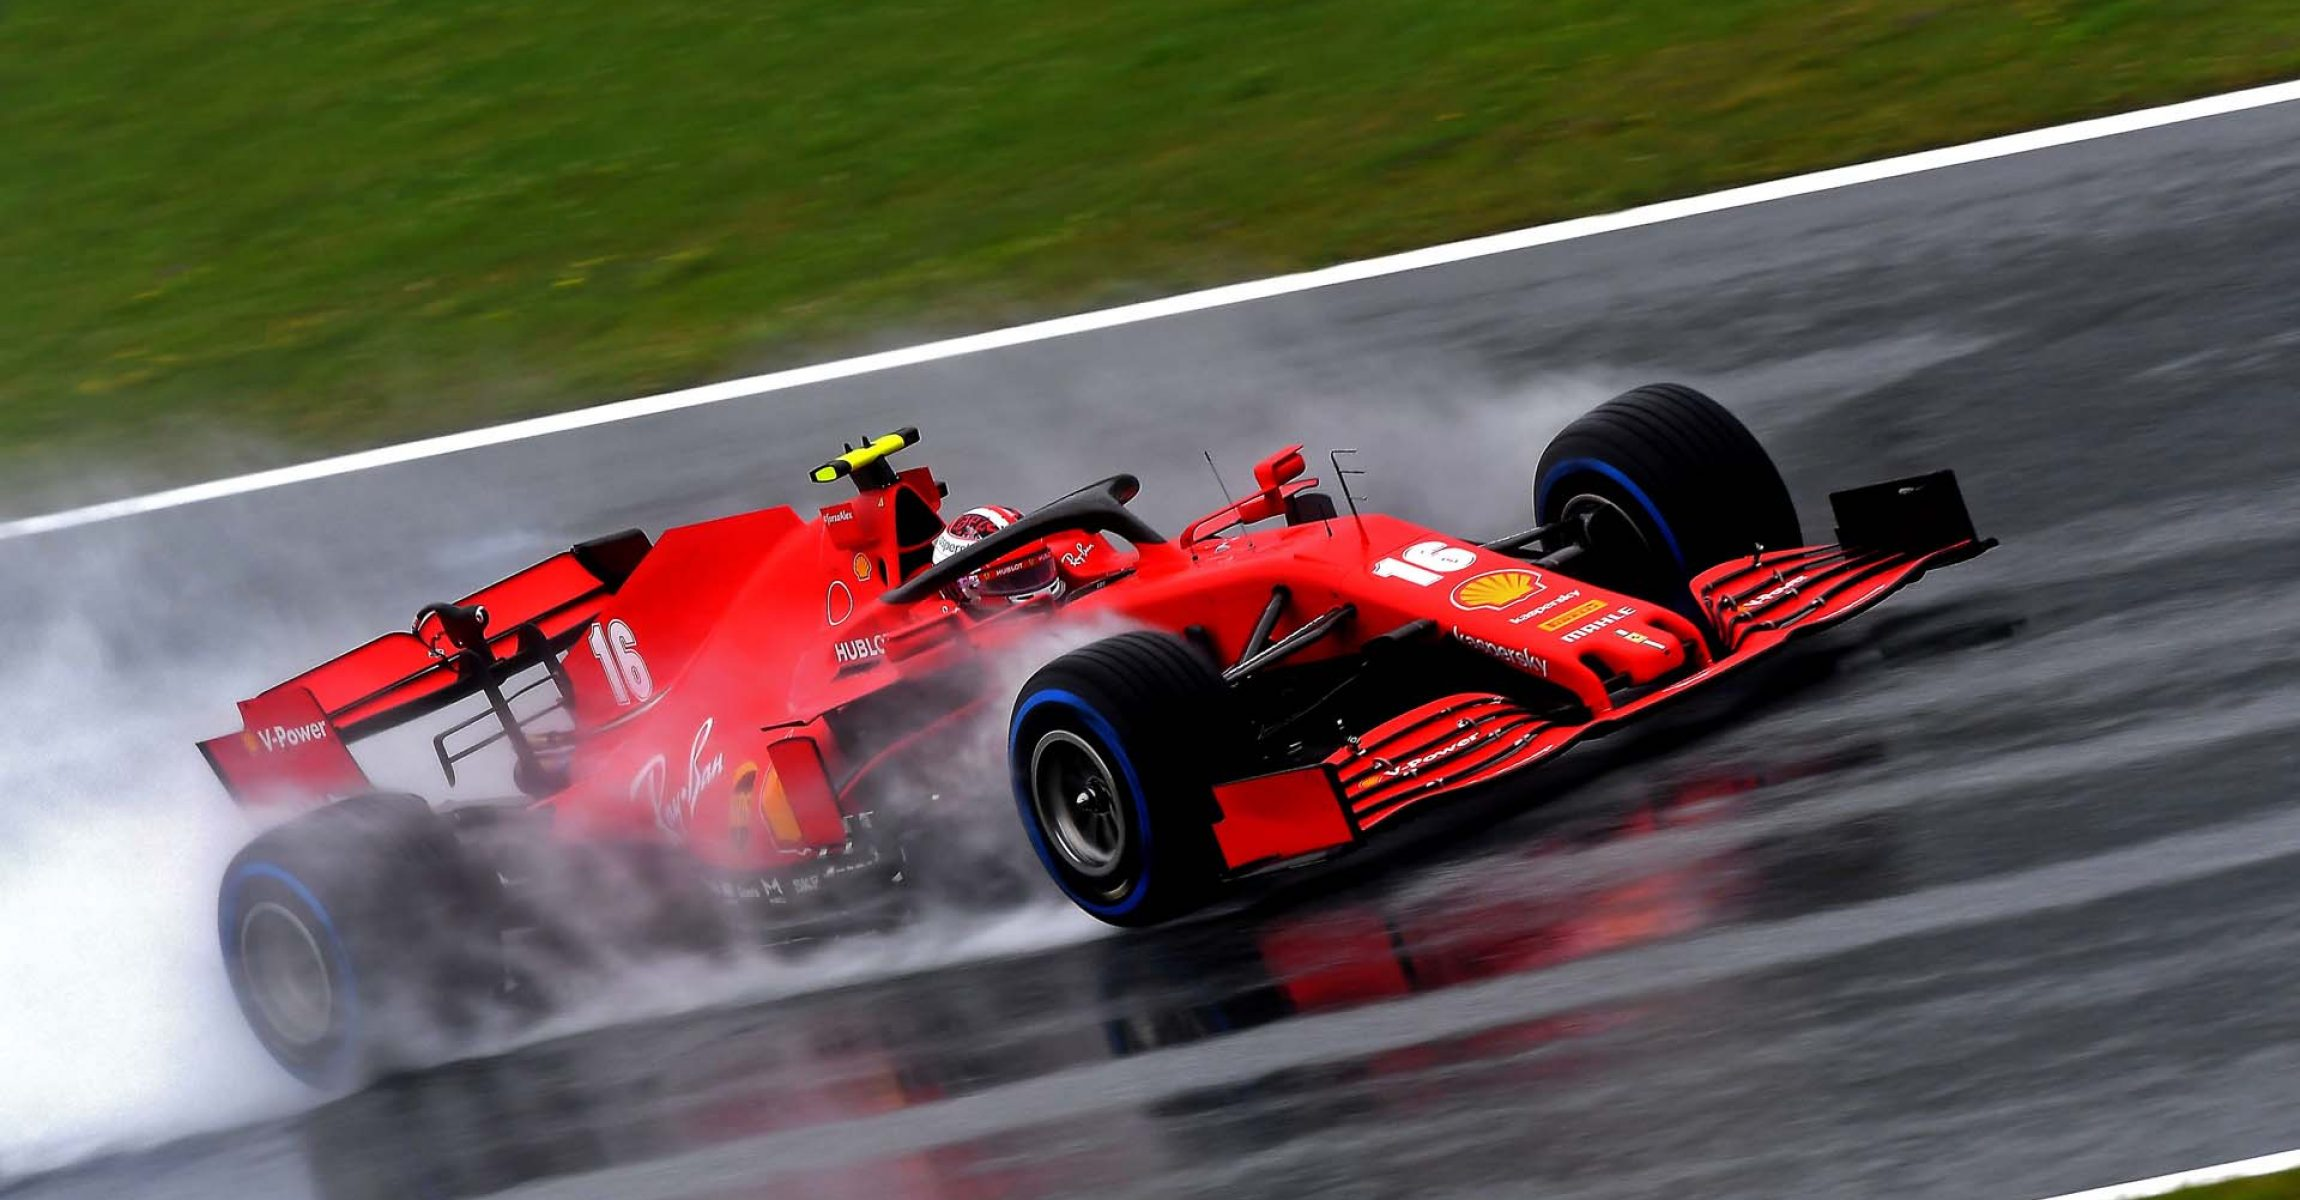 GP STYRIA F1/2020 - SABATO 11/07/2020 credit: @Scuderia Ferrari Press Office Charles Leclerc